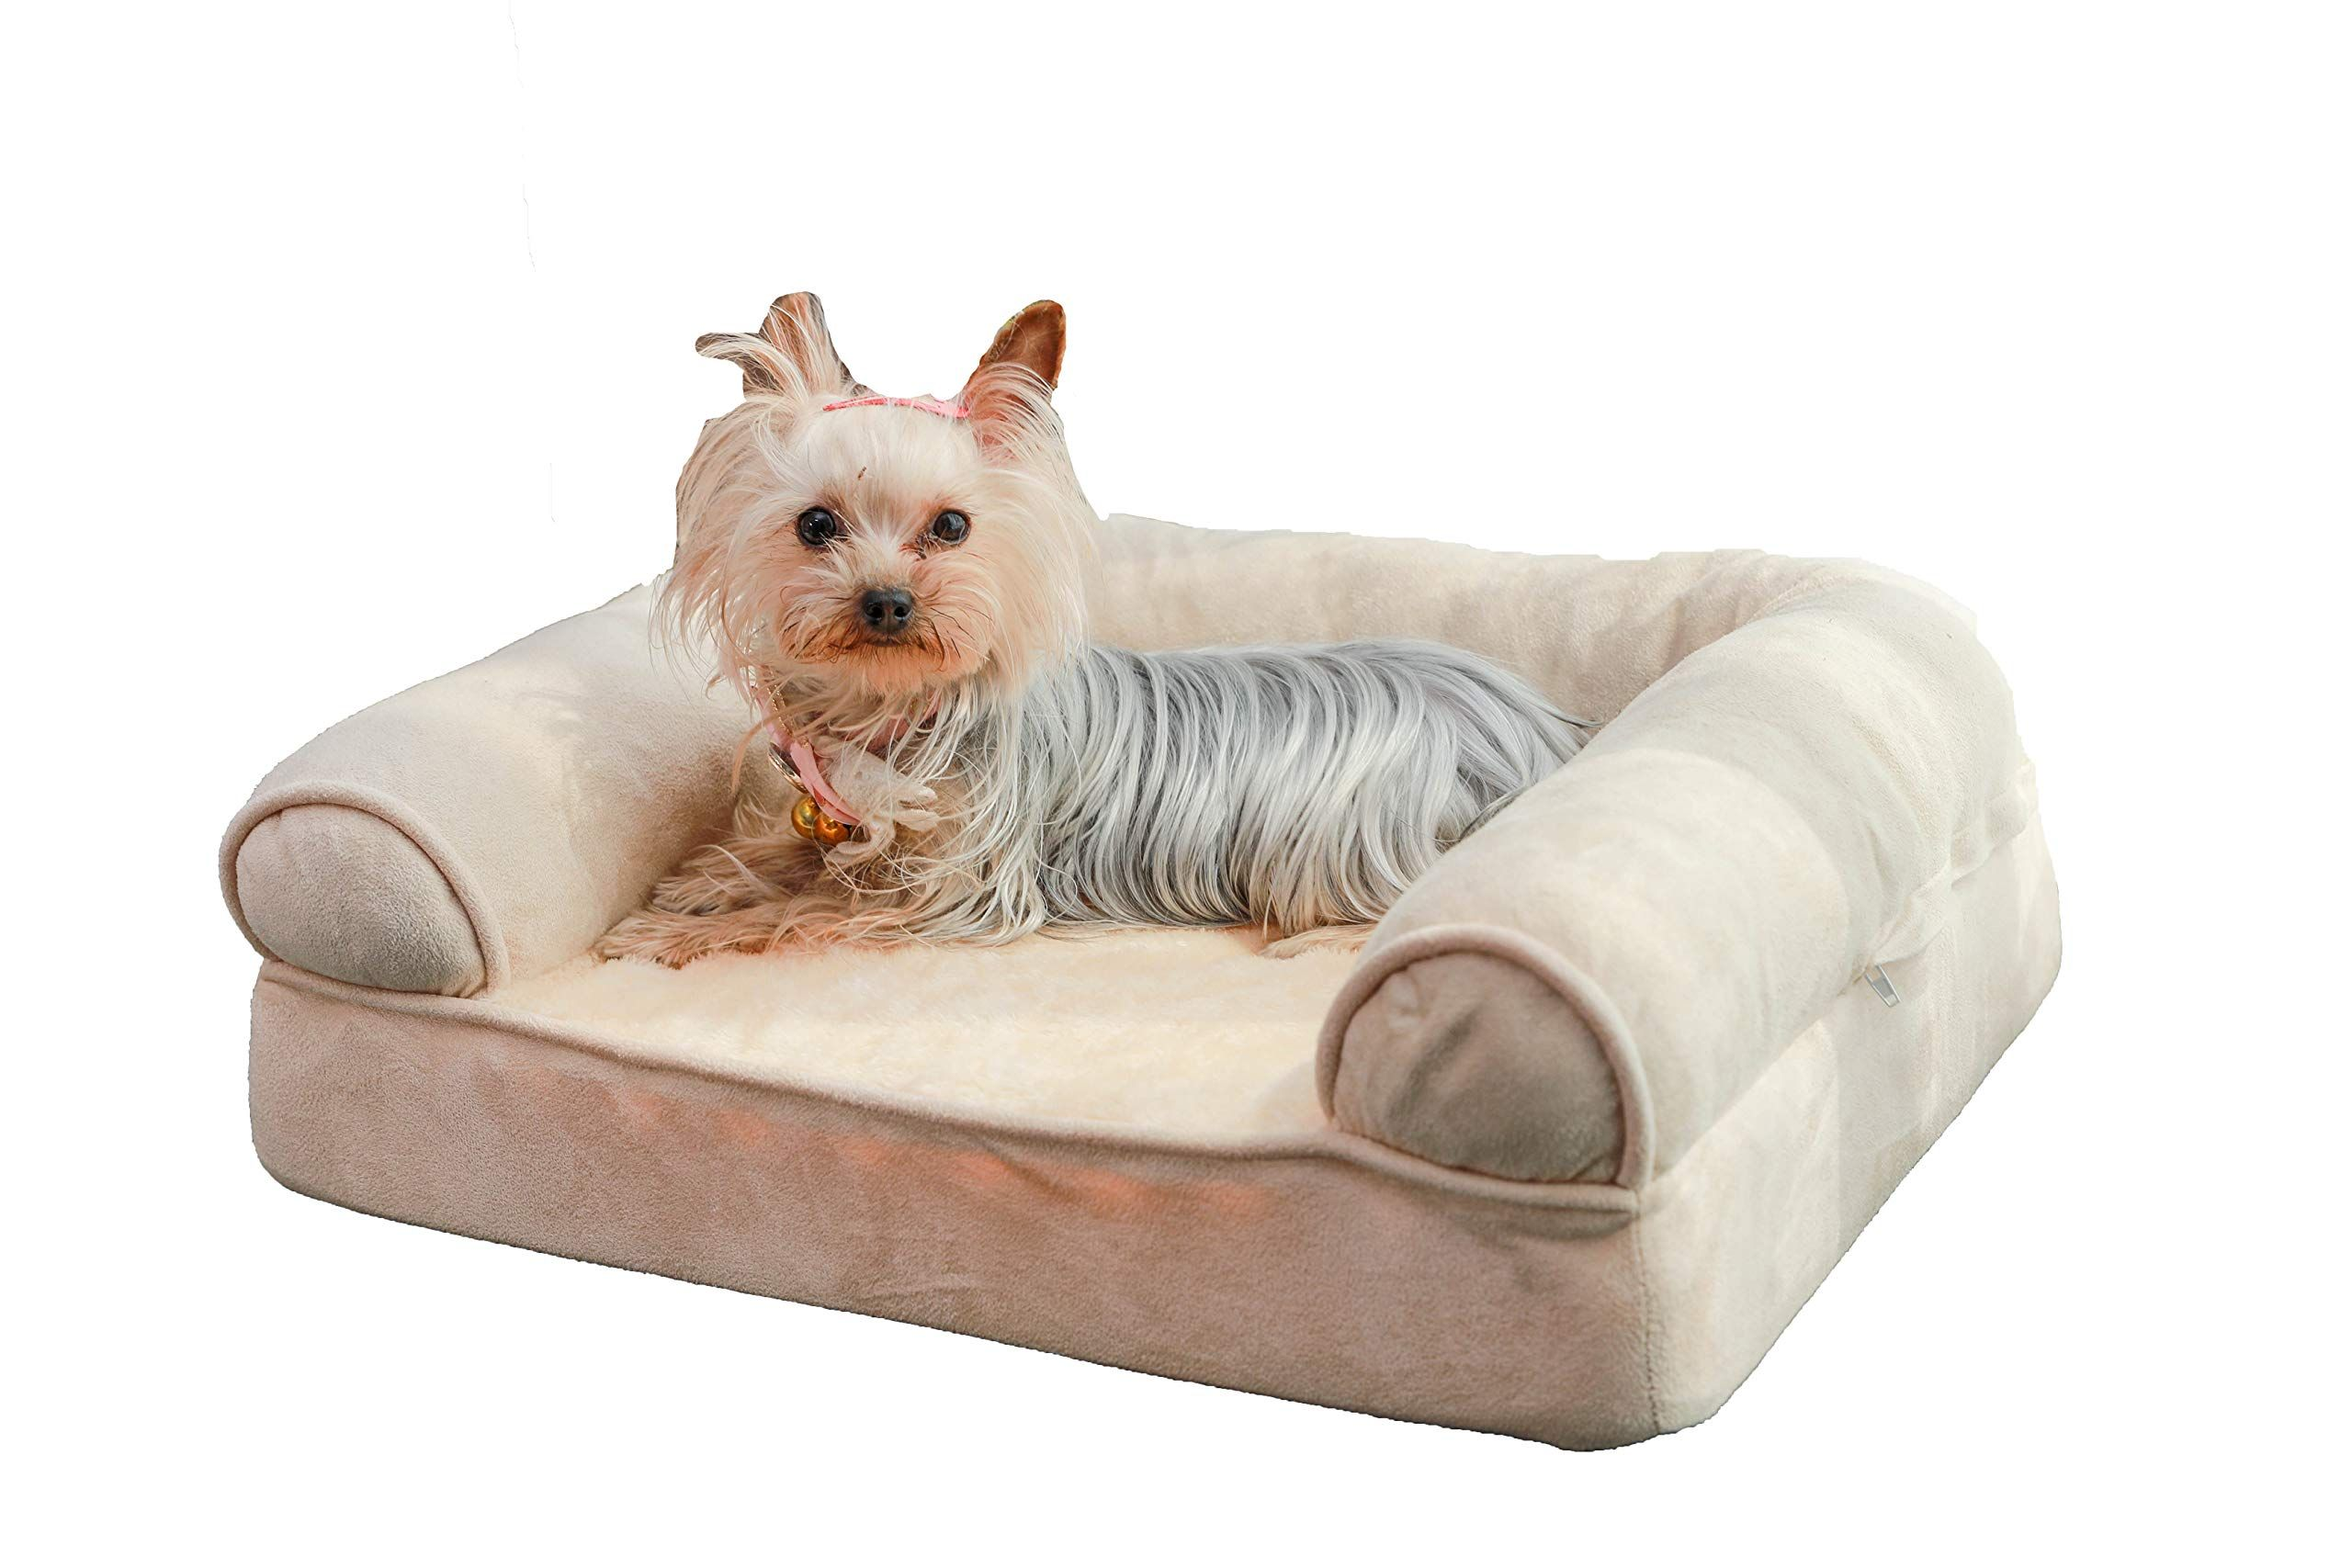 Orthopedic Dog Sofa Bed Comfortable Sofa Style Pet Bed Great For Cats And Dogs With Removable Washable Cover Small Medi Dog Sofa Dog Sofa Bed Orthopedic Dog